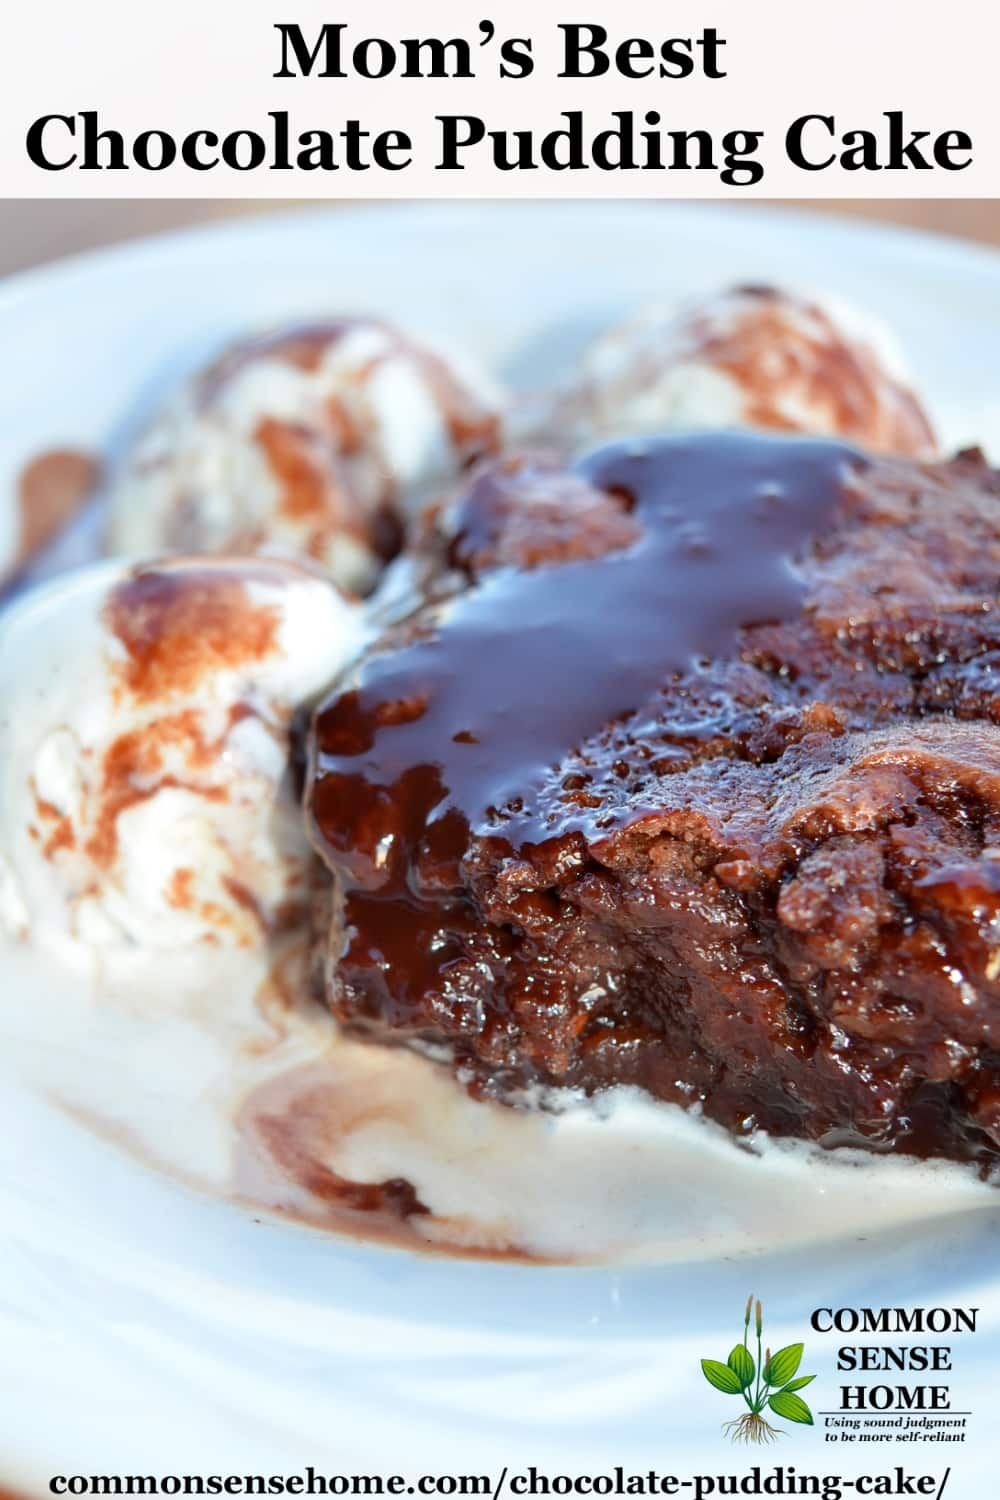 Old fashioned chocolate pudding cake on white plate with vanilla ice cream